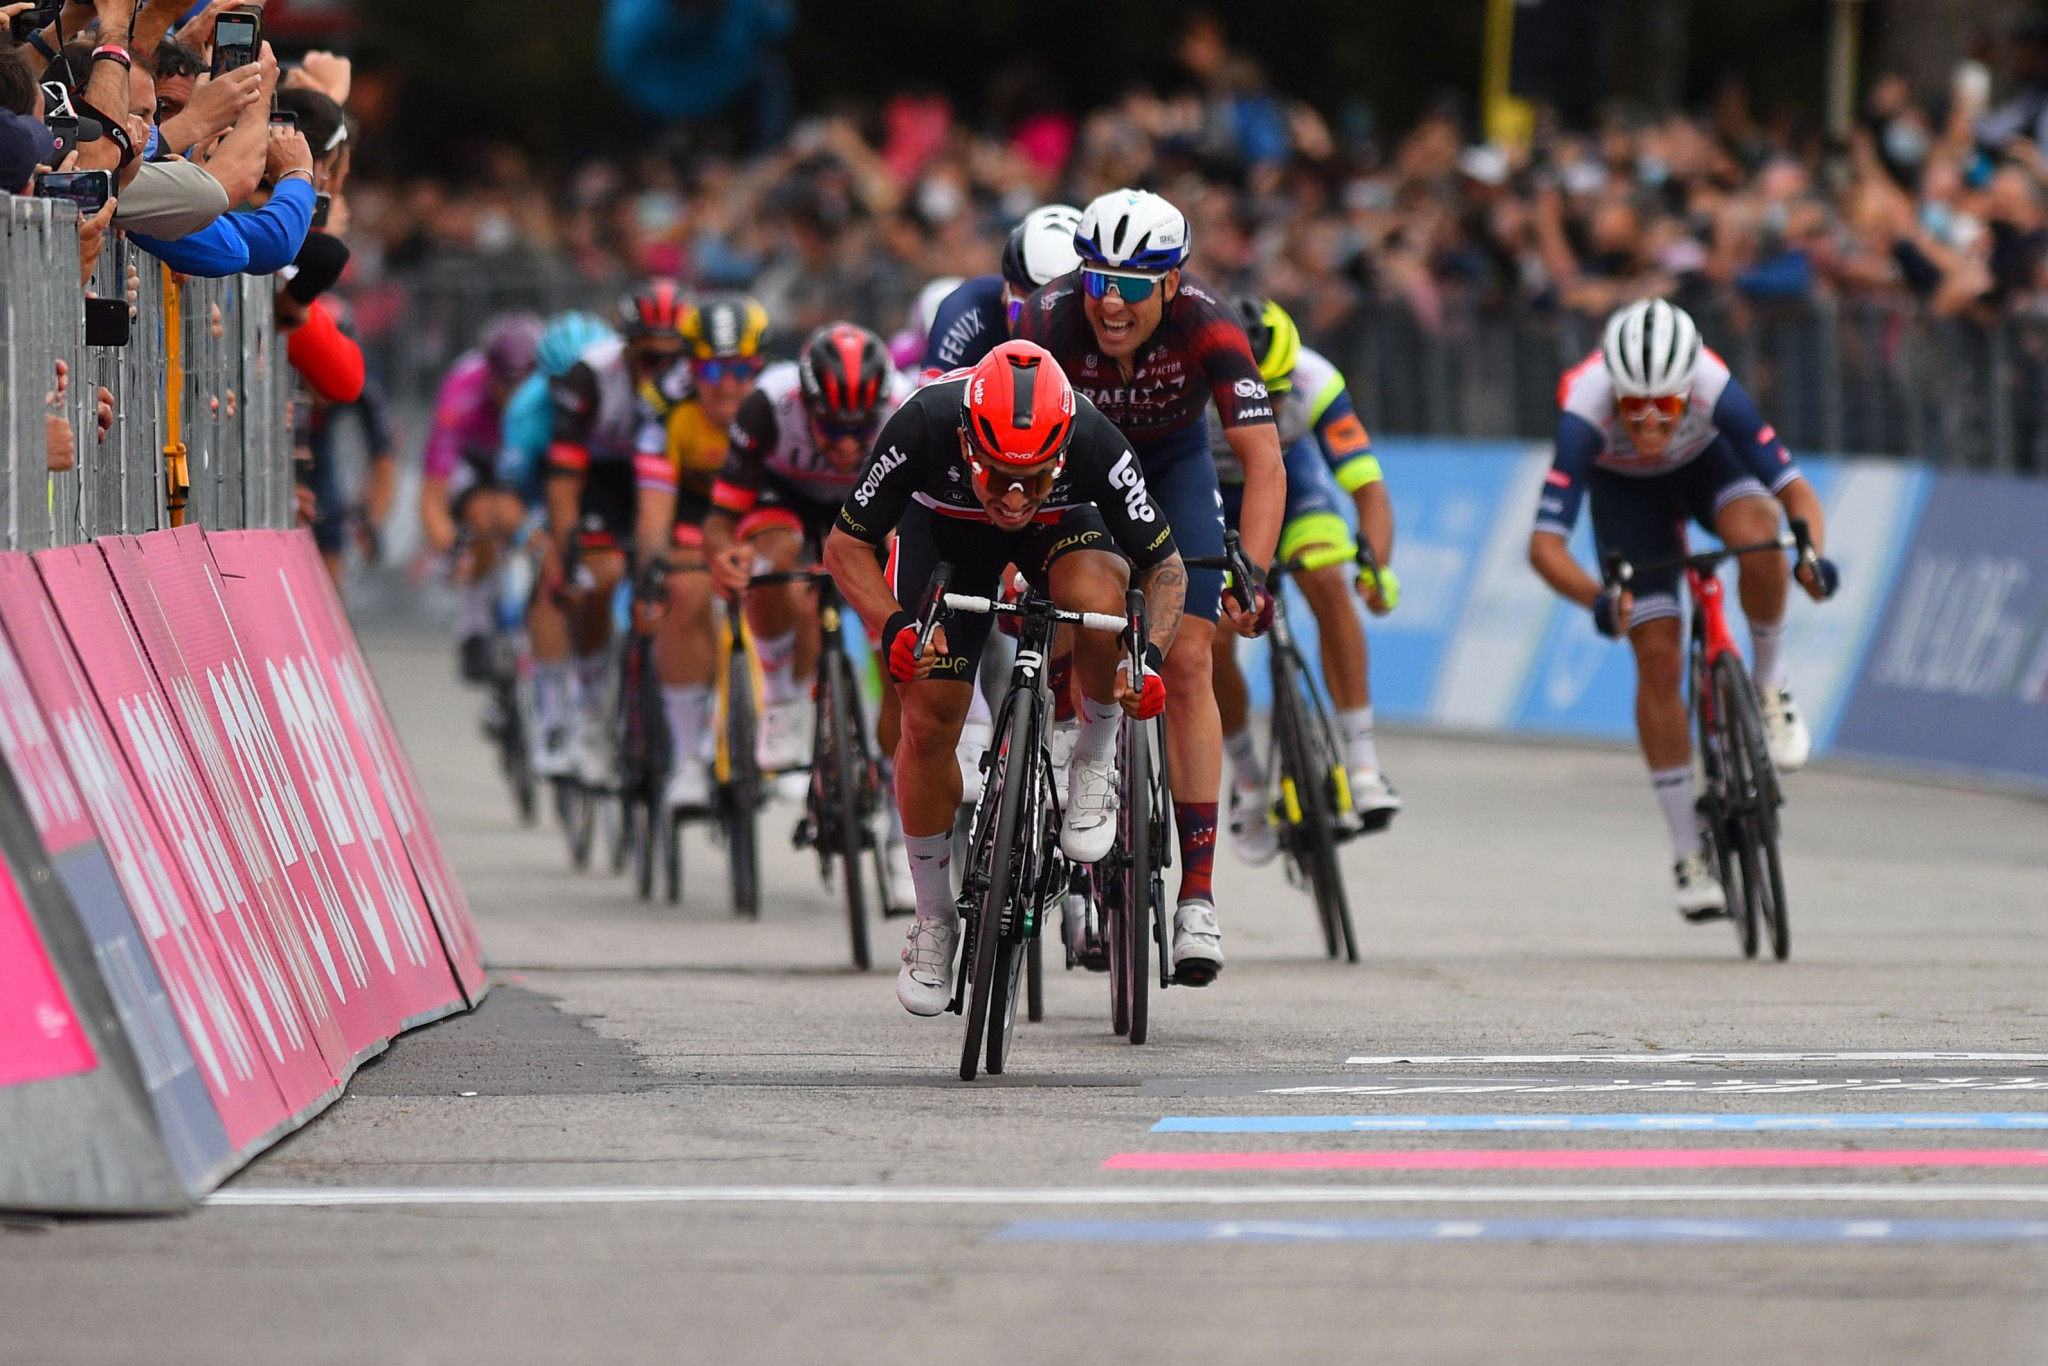 Ewan earns second stage win at Giro d'Italia with dominant finish in Termoli